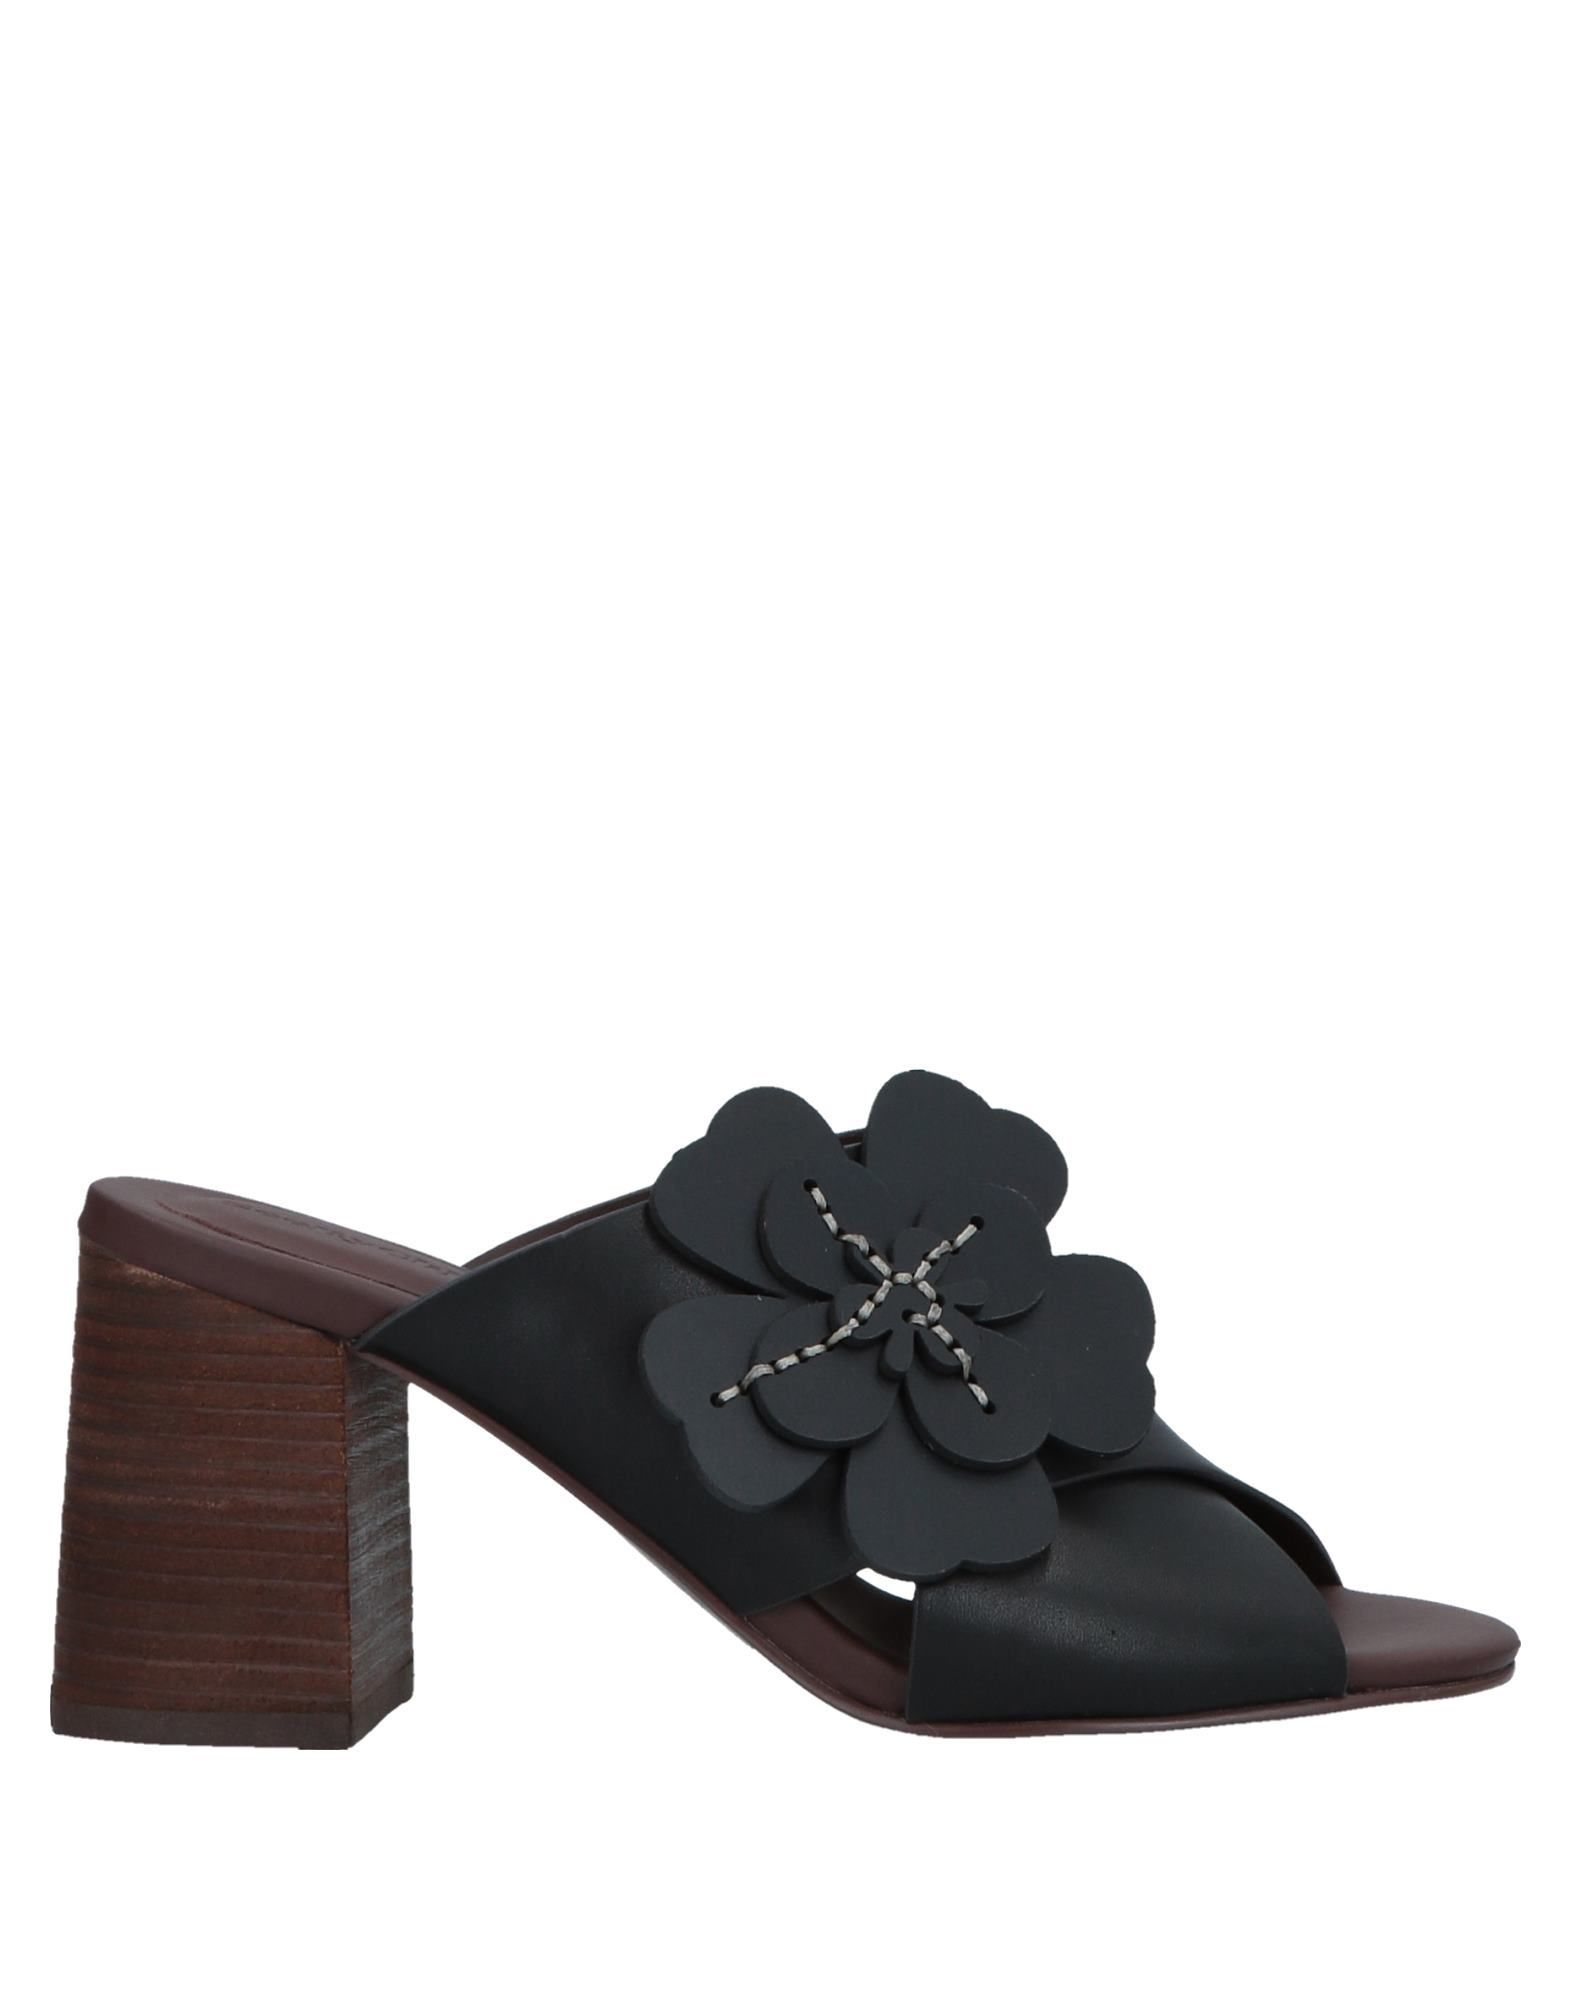 See By Chloe Black Leather Sandals